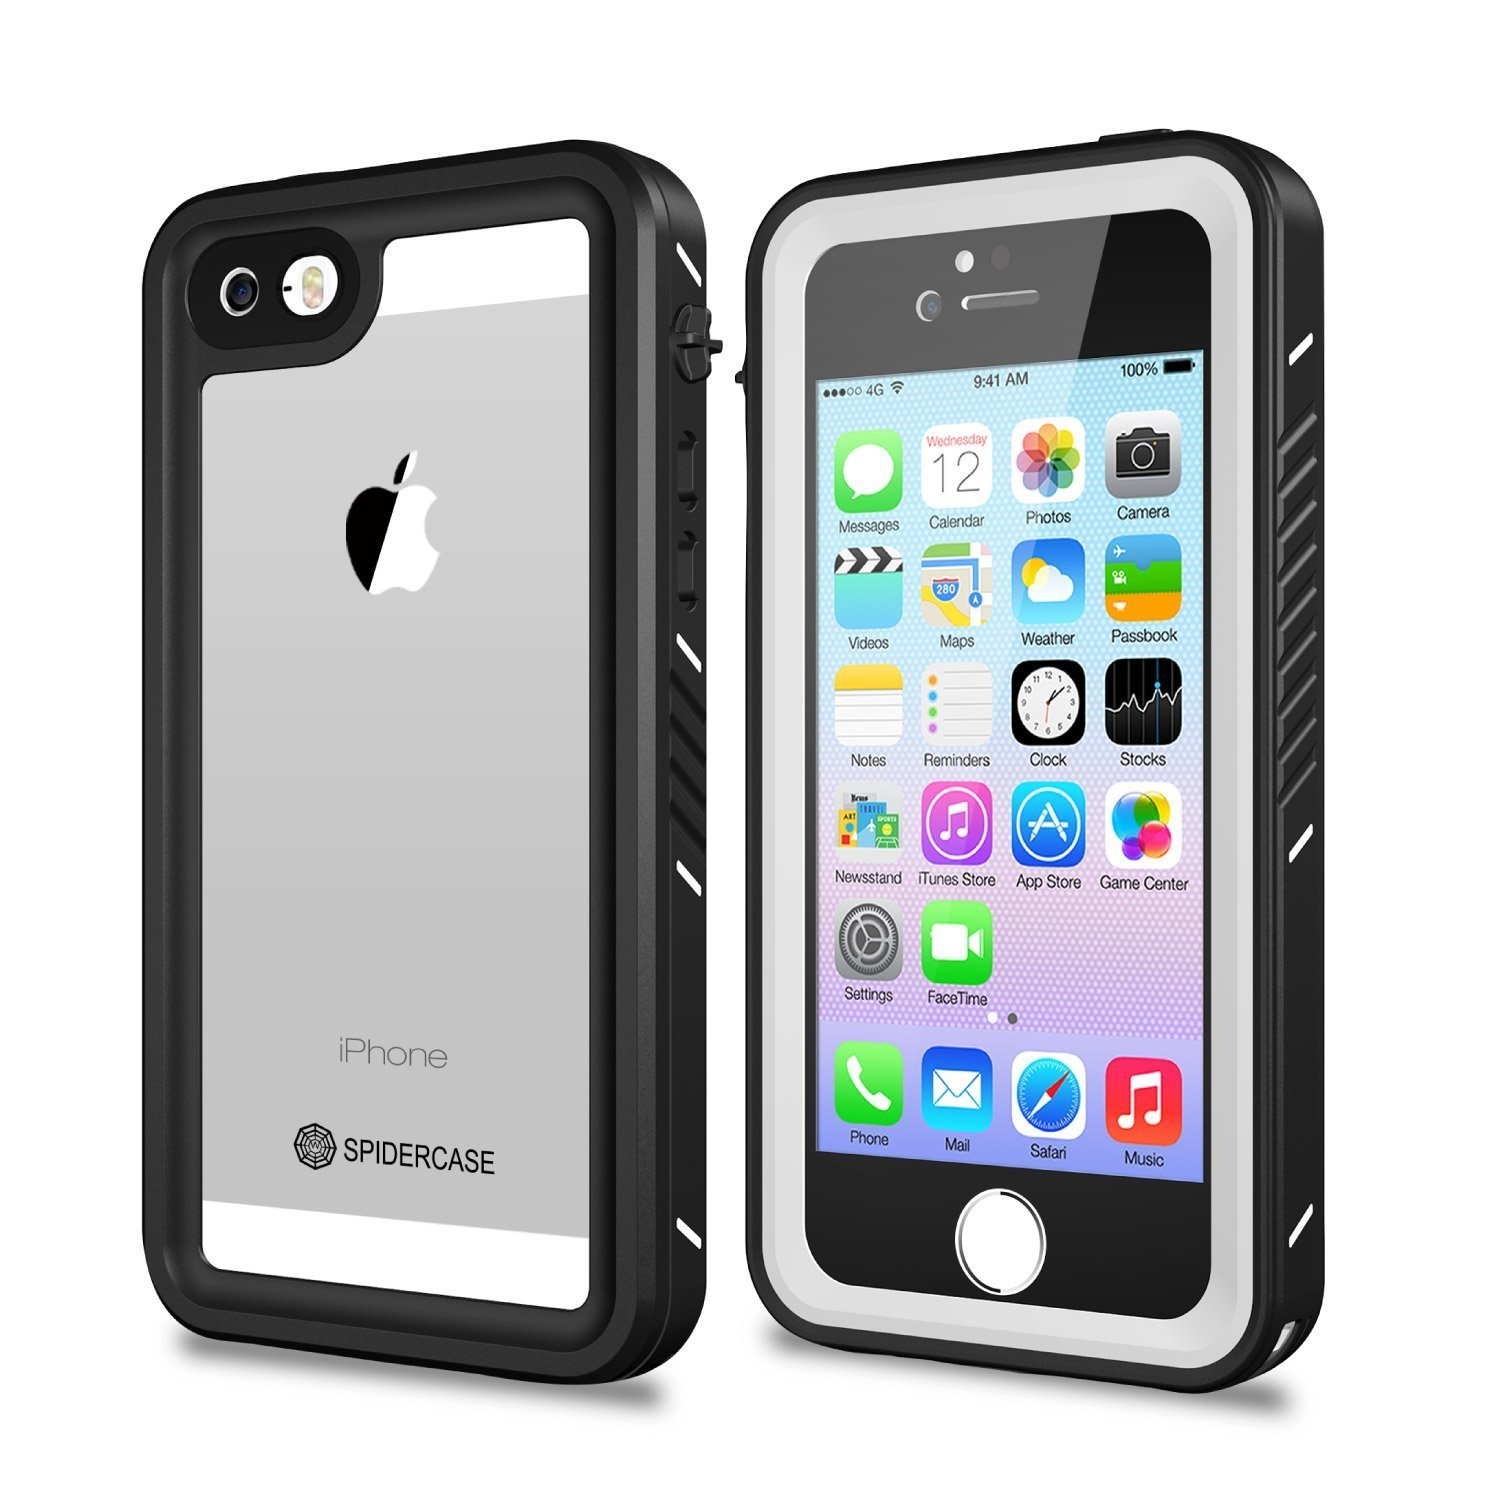 premium selection 0d501 f8df6 iPhone 5/5S/SE Waterproof Case,SPIDERCASE Full Body Protective Cover Rugged  Dustproof Snowproof IP68 Certified Waterproof Case with Touch ID for ...